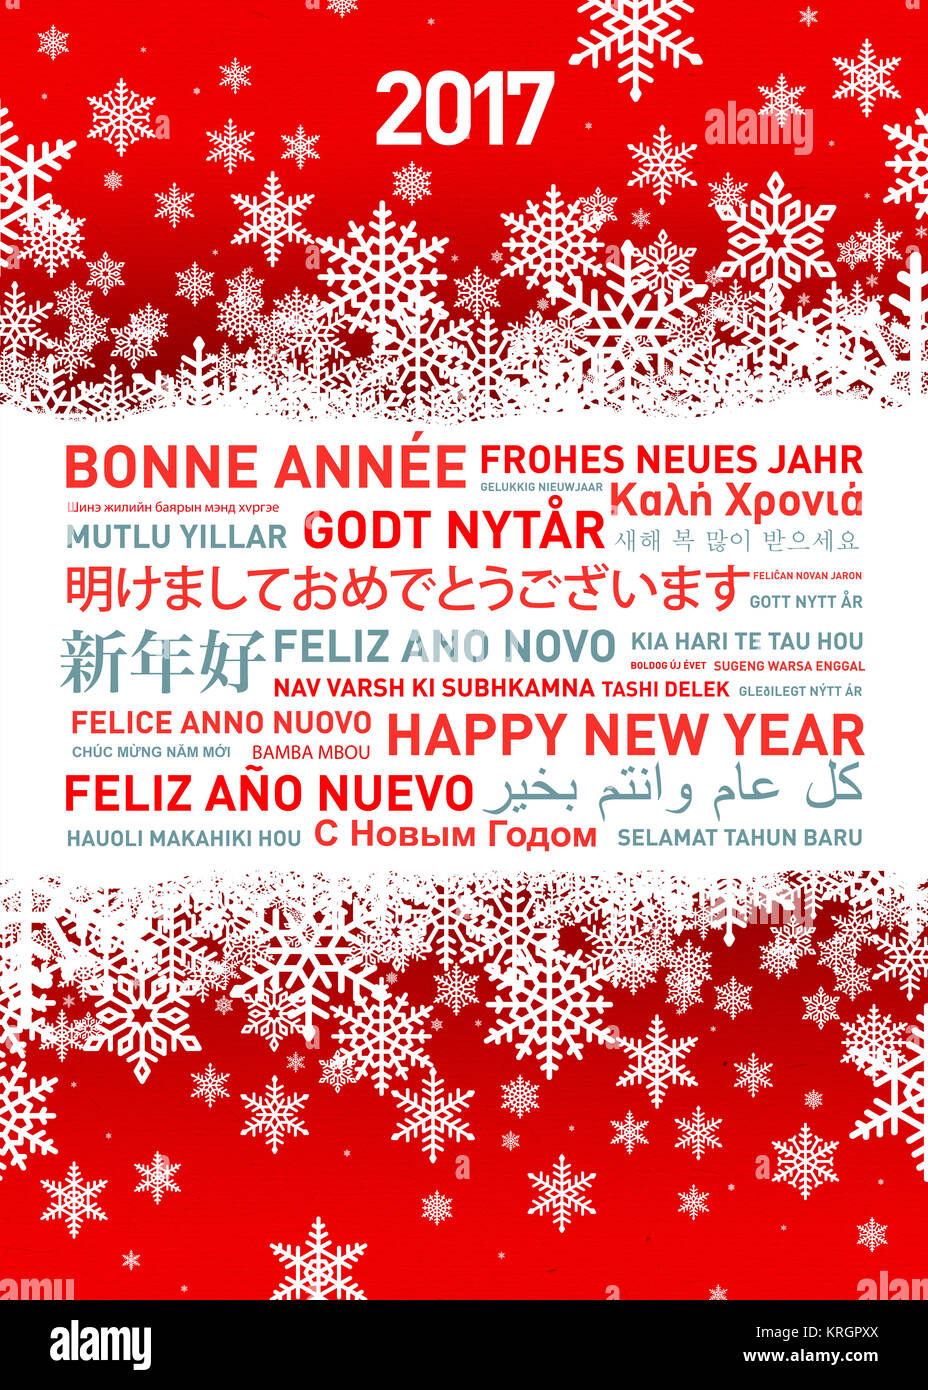 German new year greetings stock photos german new year greetings happy new year greetings card from all the world stock image m4hsunfo